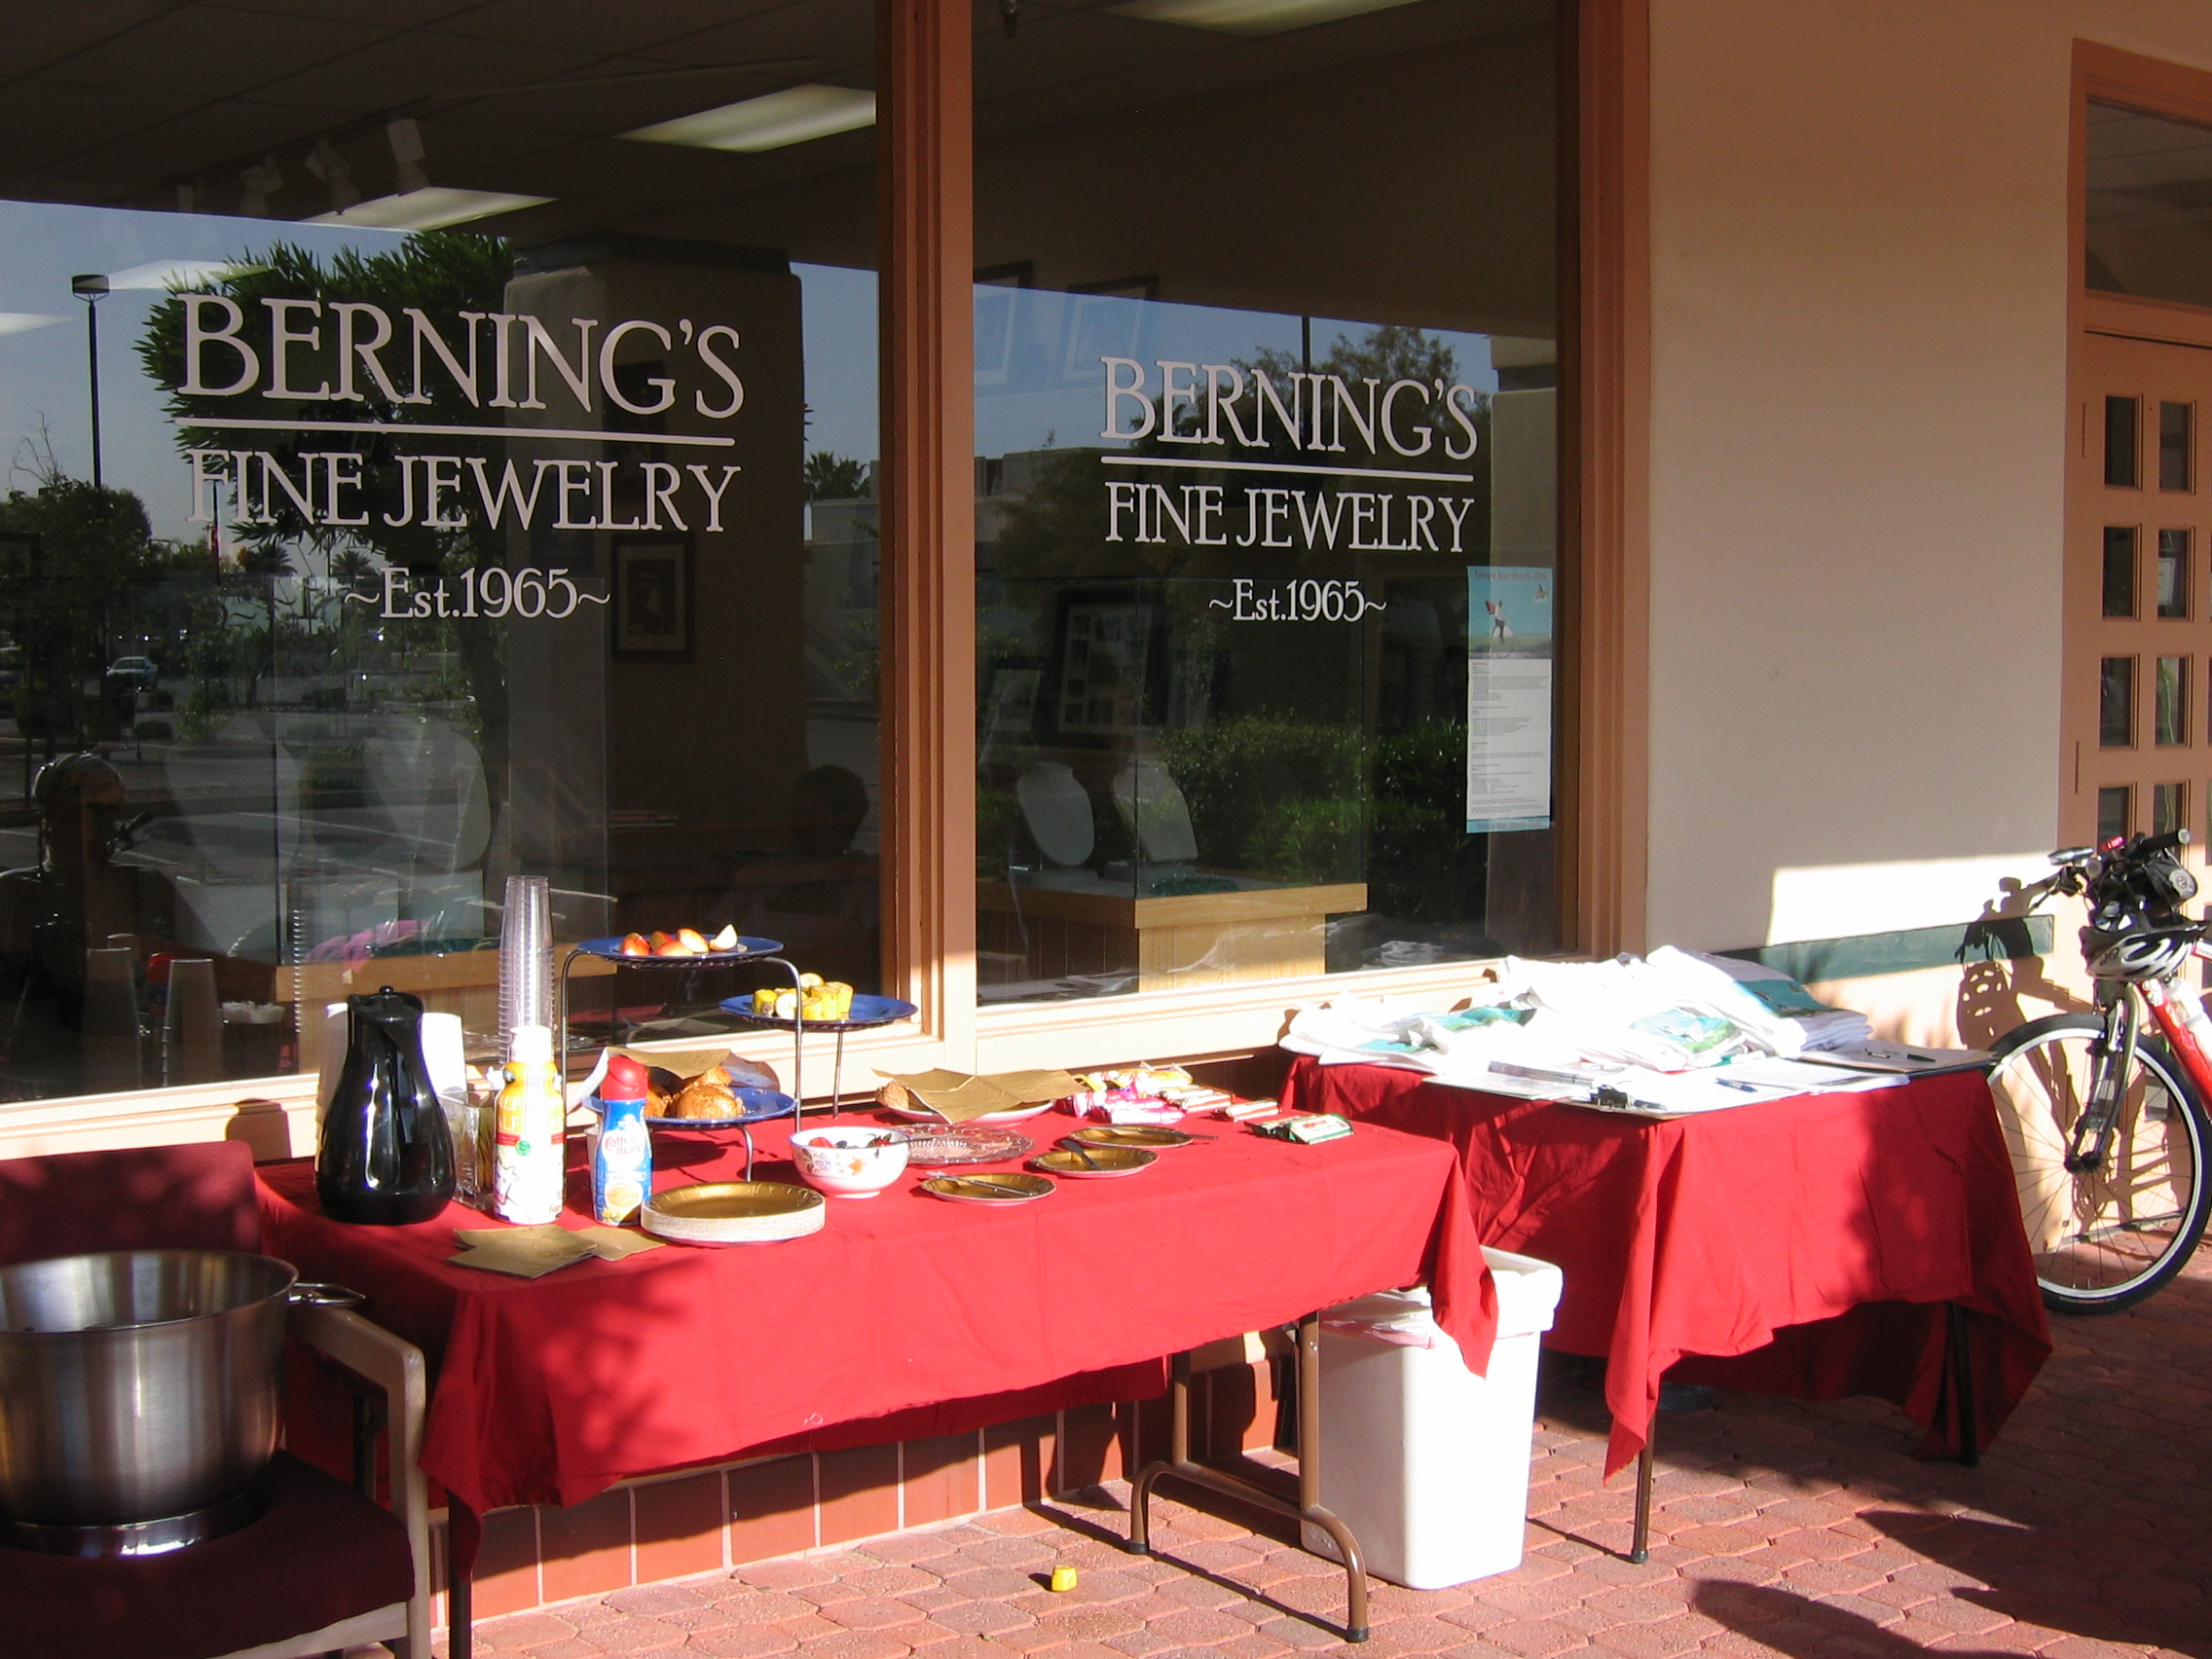 Berning's Fine Jewelery